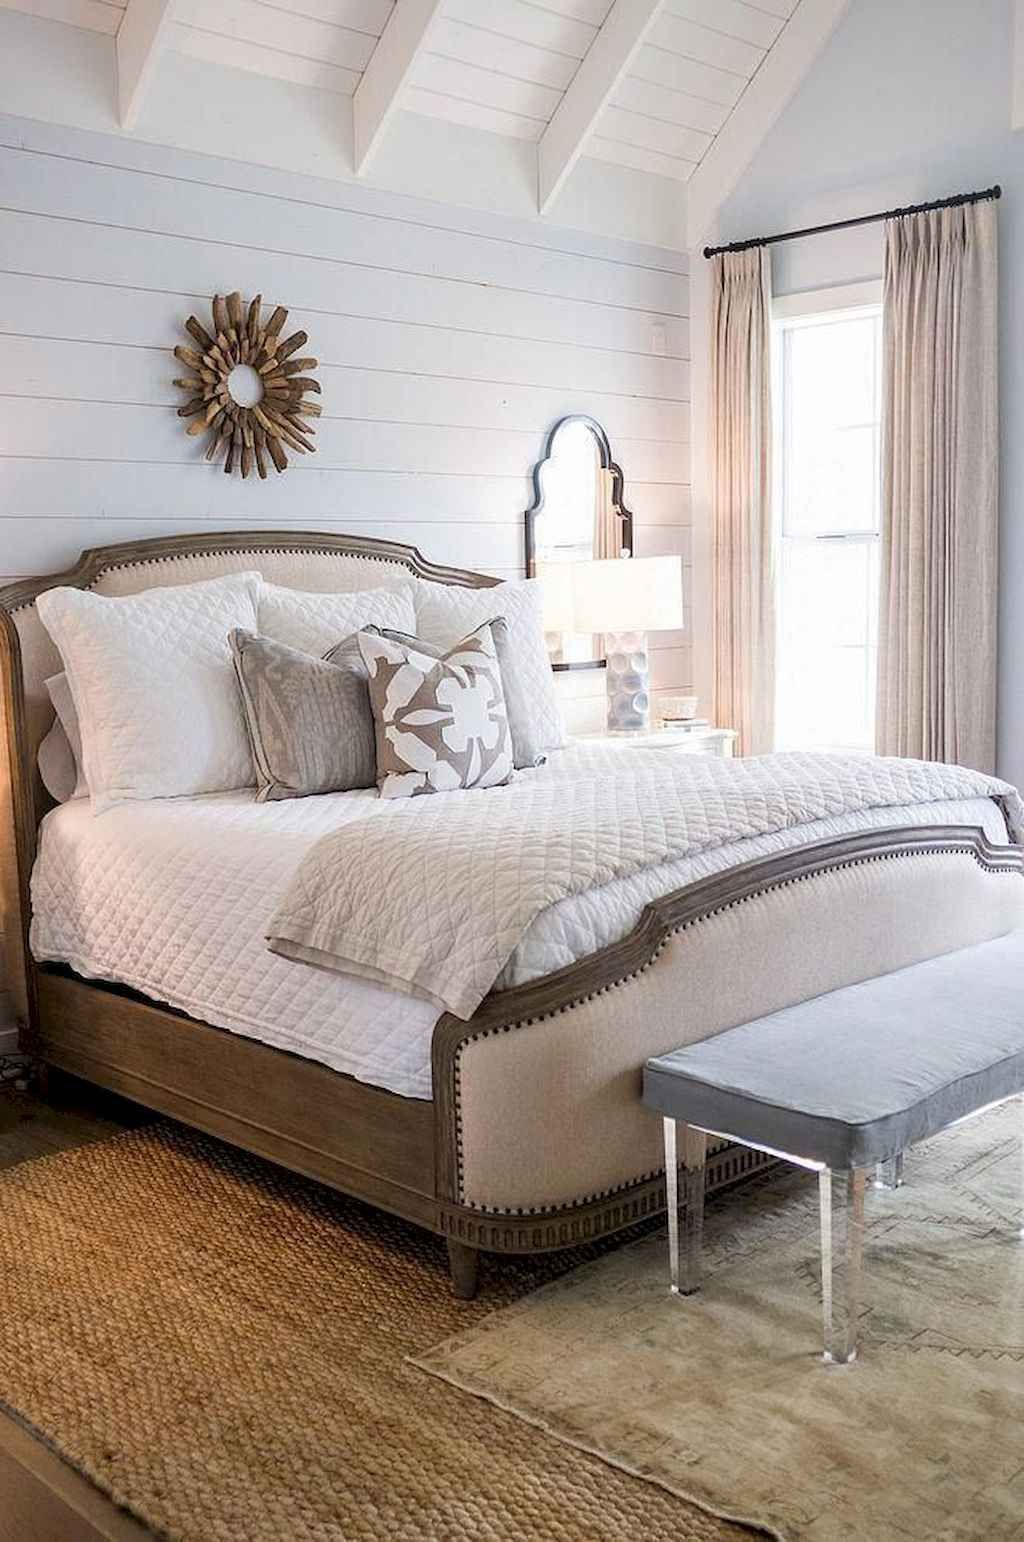 65 Farmhouse Master Bedroom Decorating Ideas Modern Bedroom Interior Remodel Bedroom Bedroom Interior